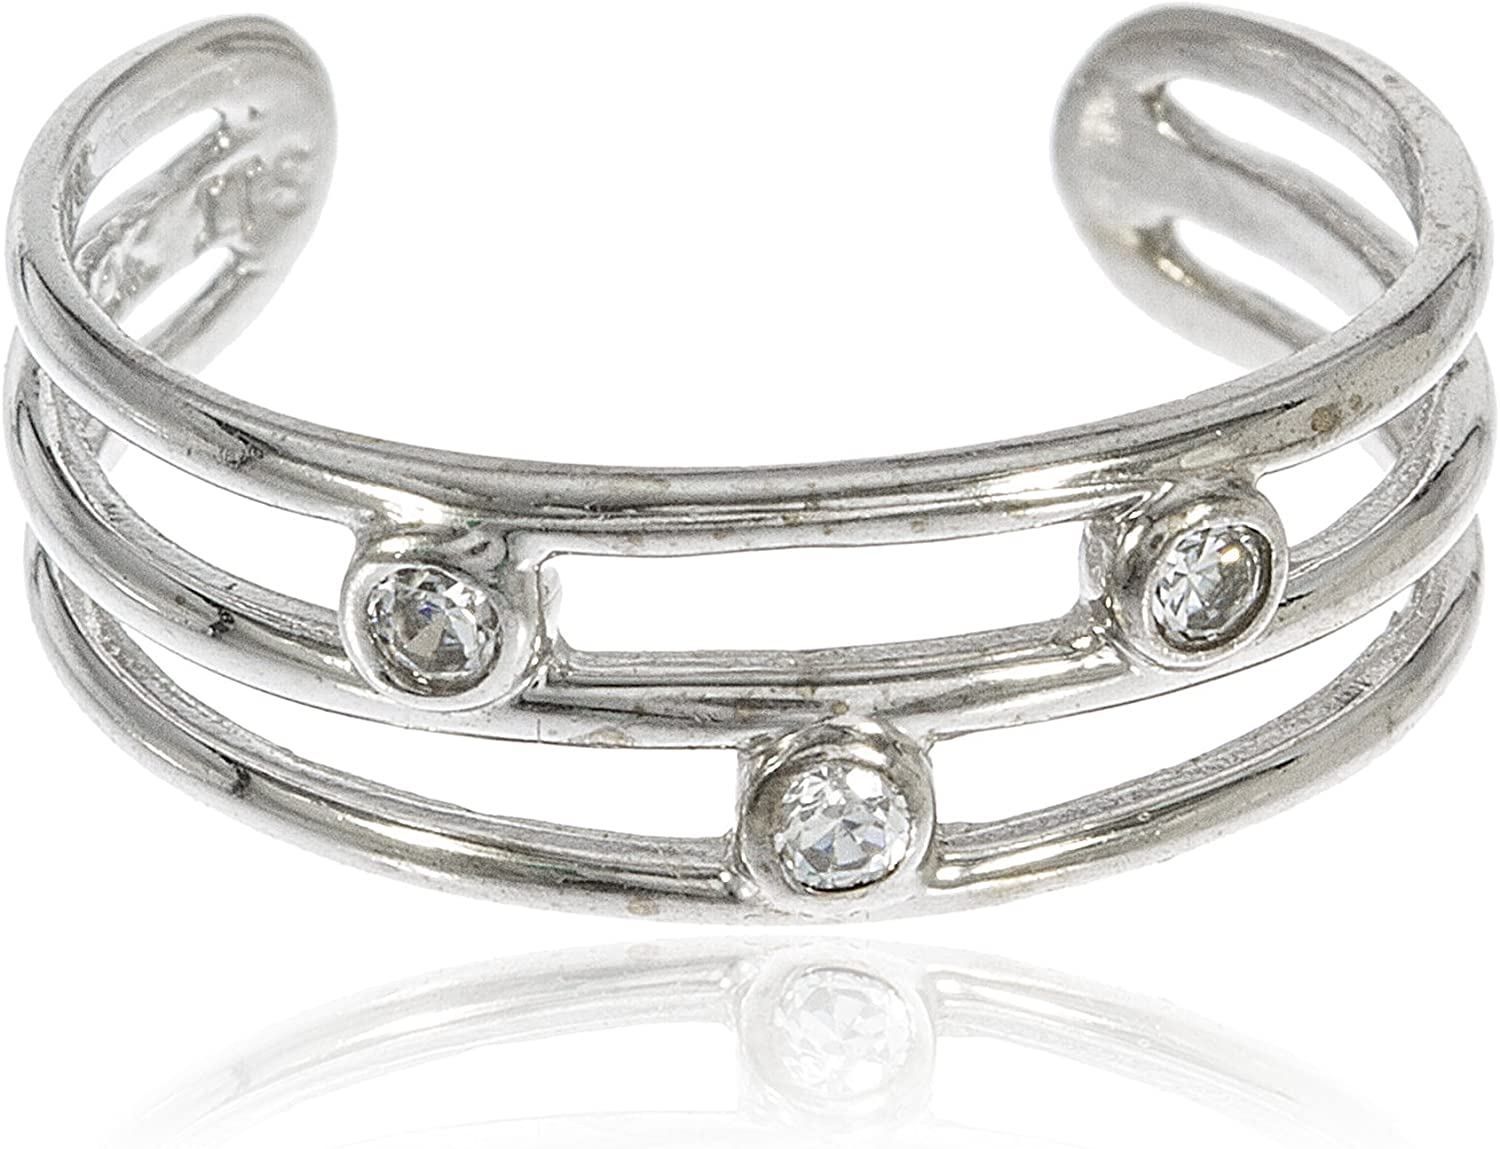 JOTW 10k White Gold Three Wire Toe Ring with Stones (GO-695)